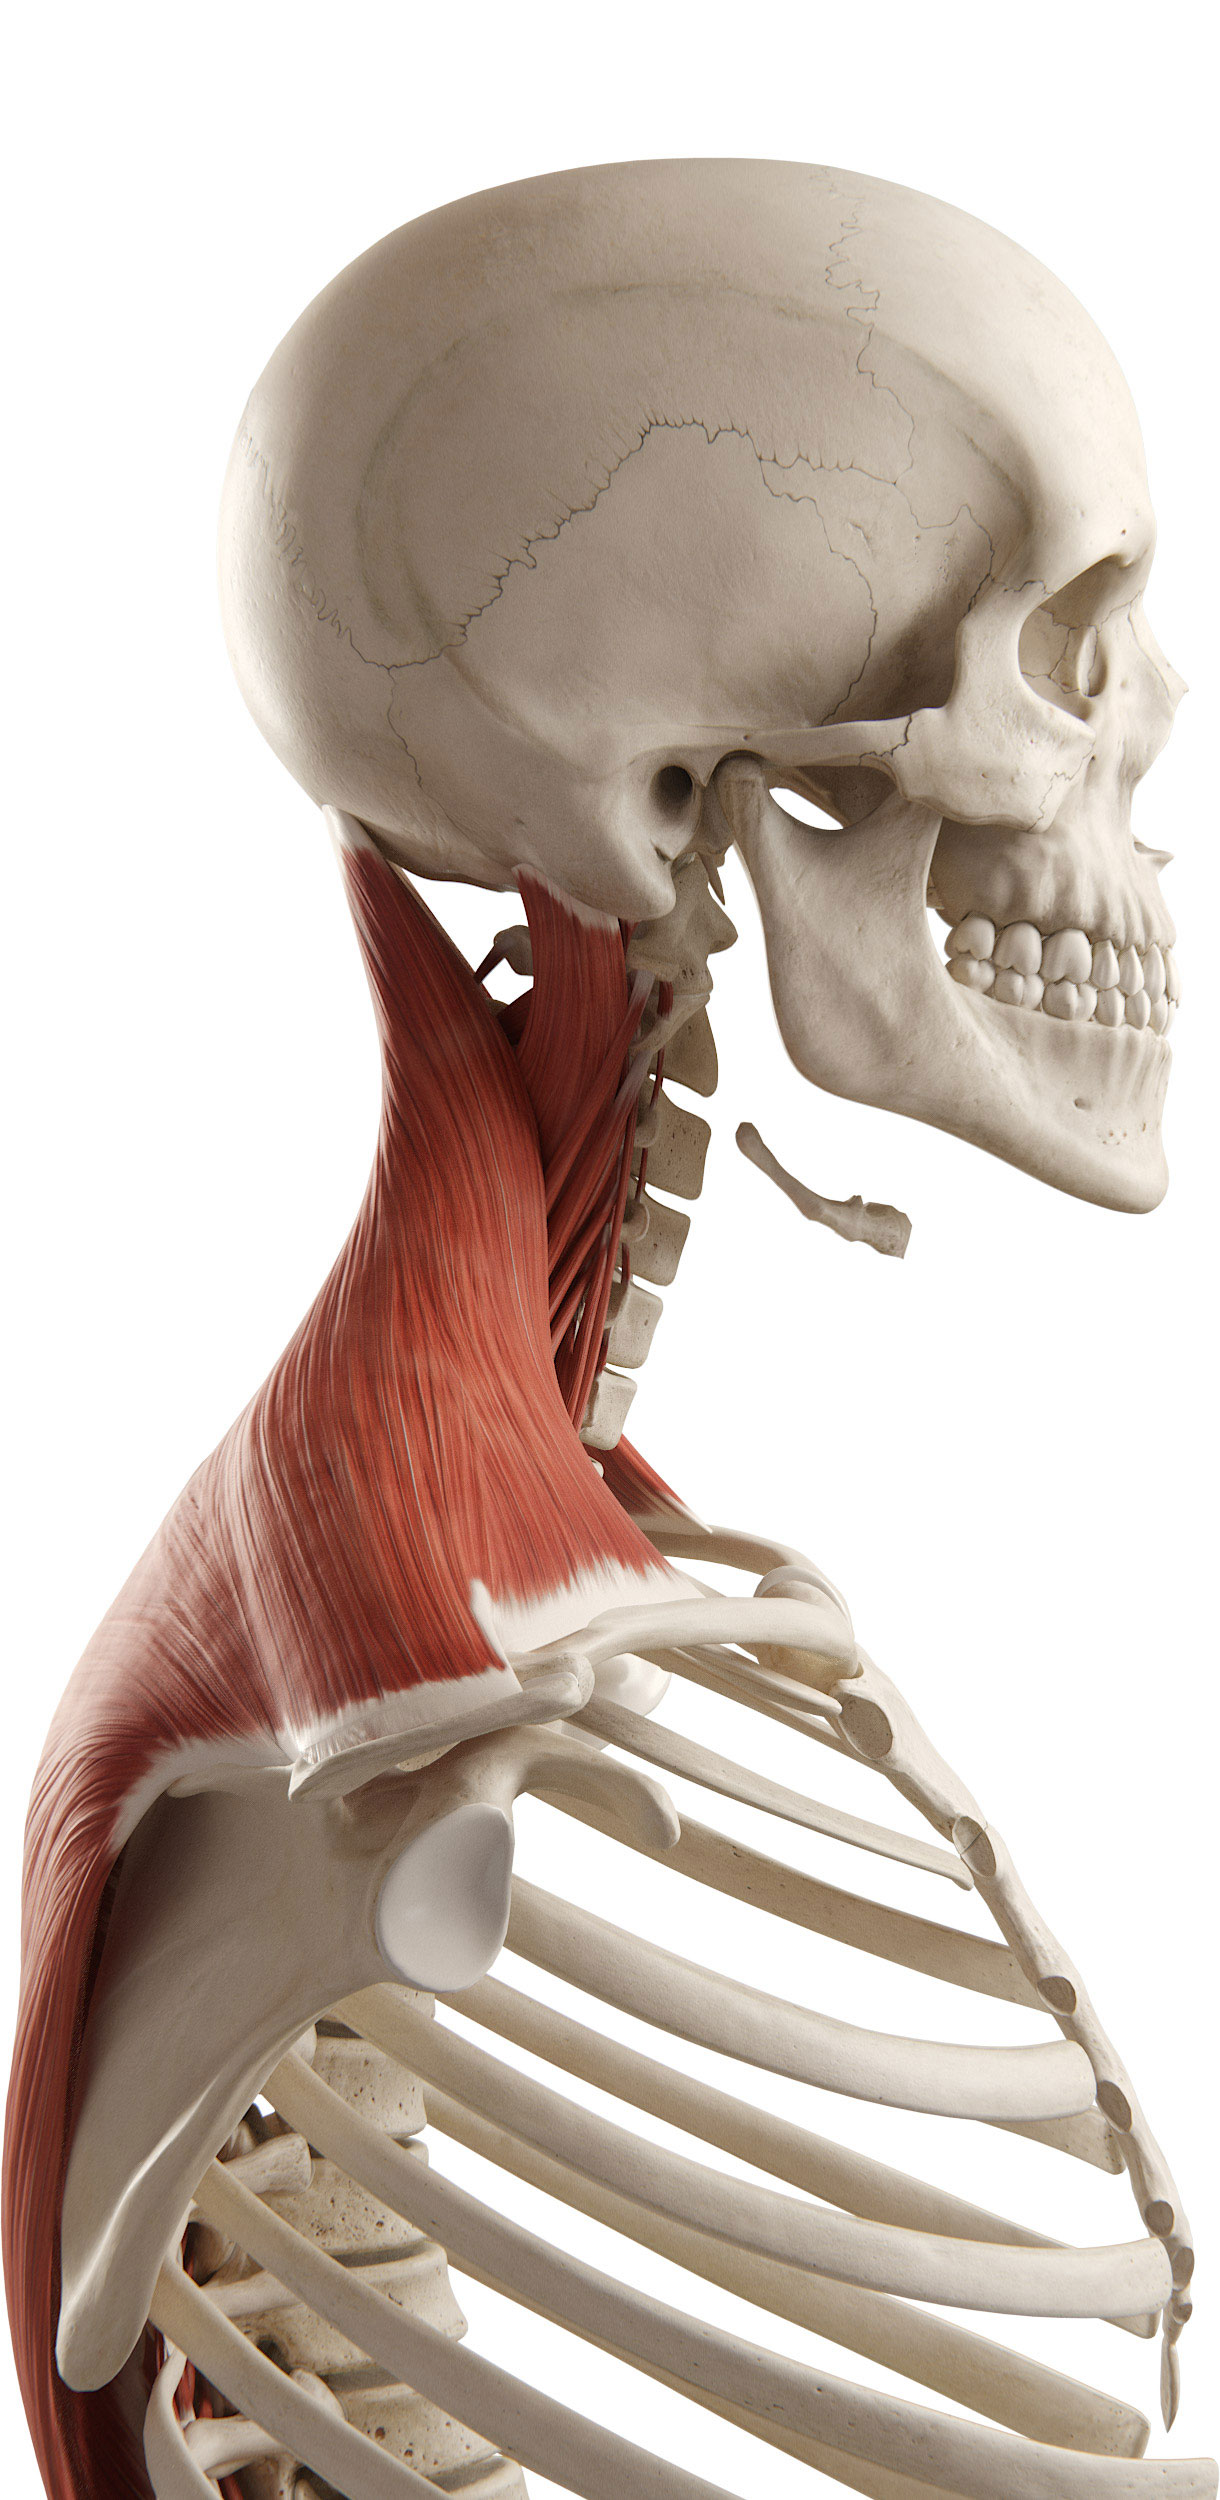 3D4Medical – Page 2 – Award-winning 3D Anatomy and Medical Apps